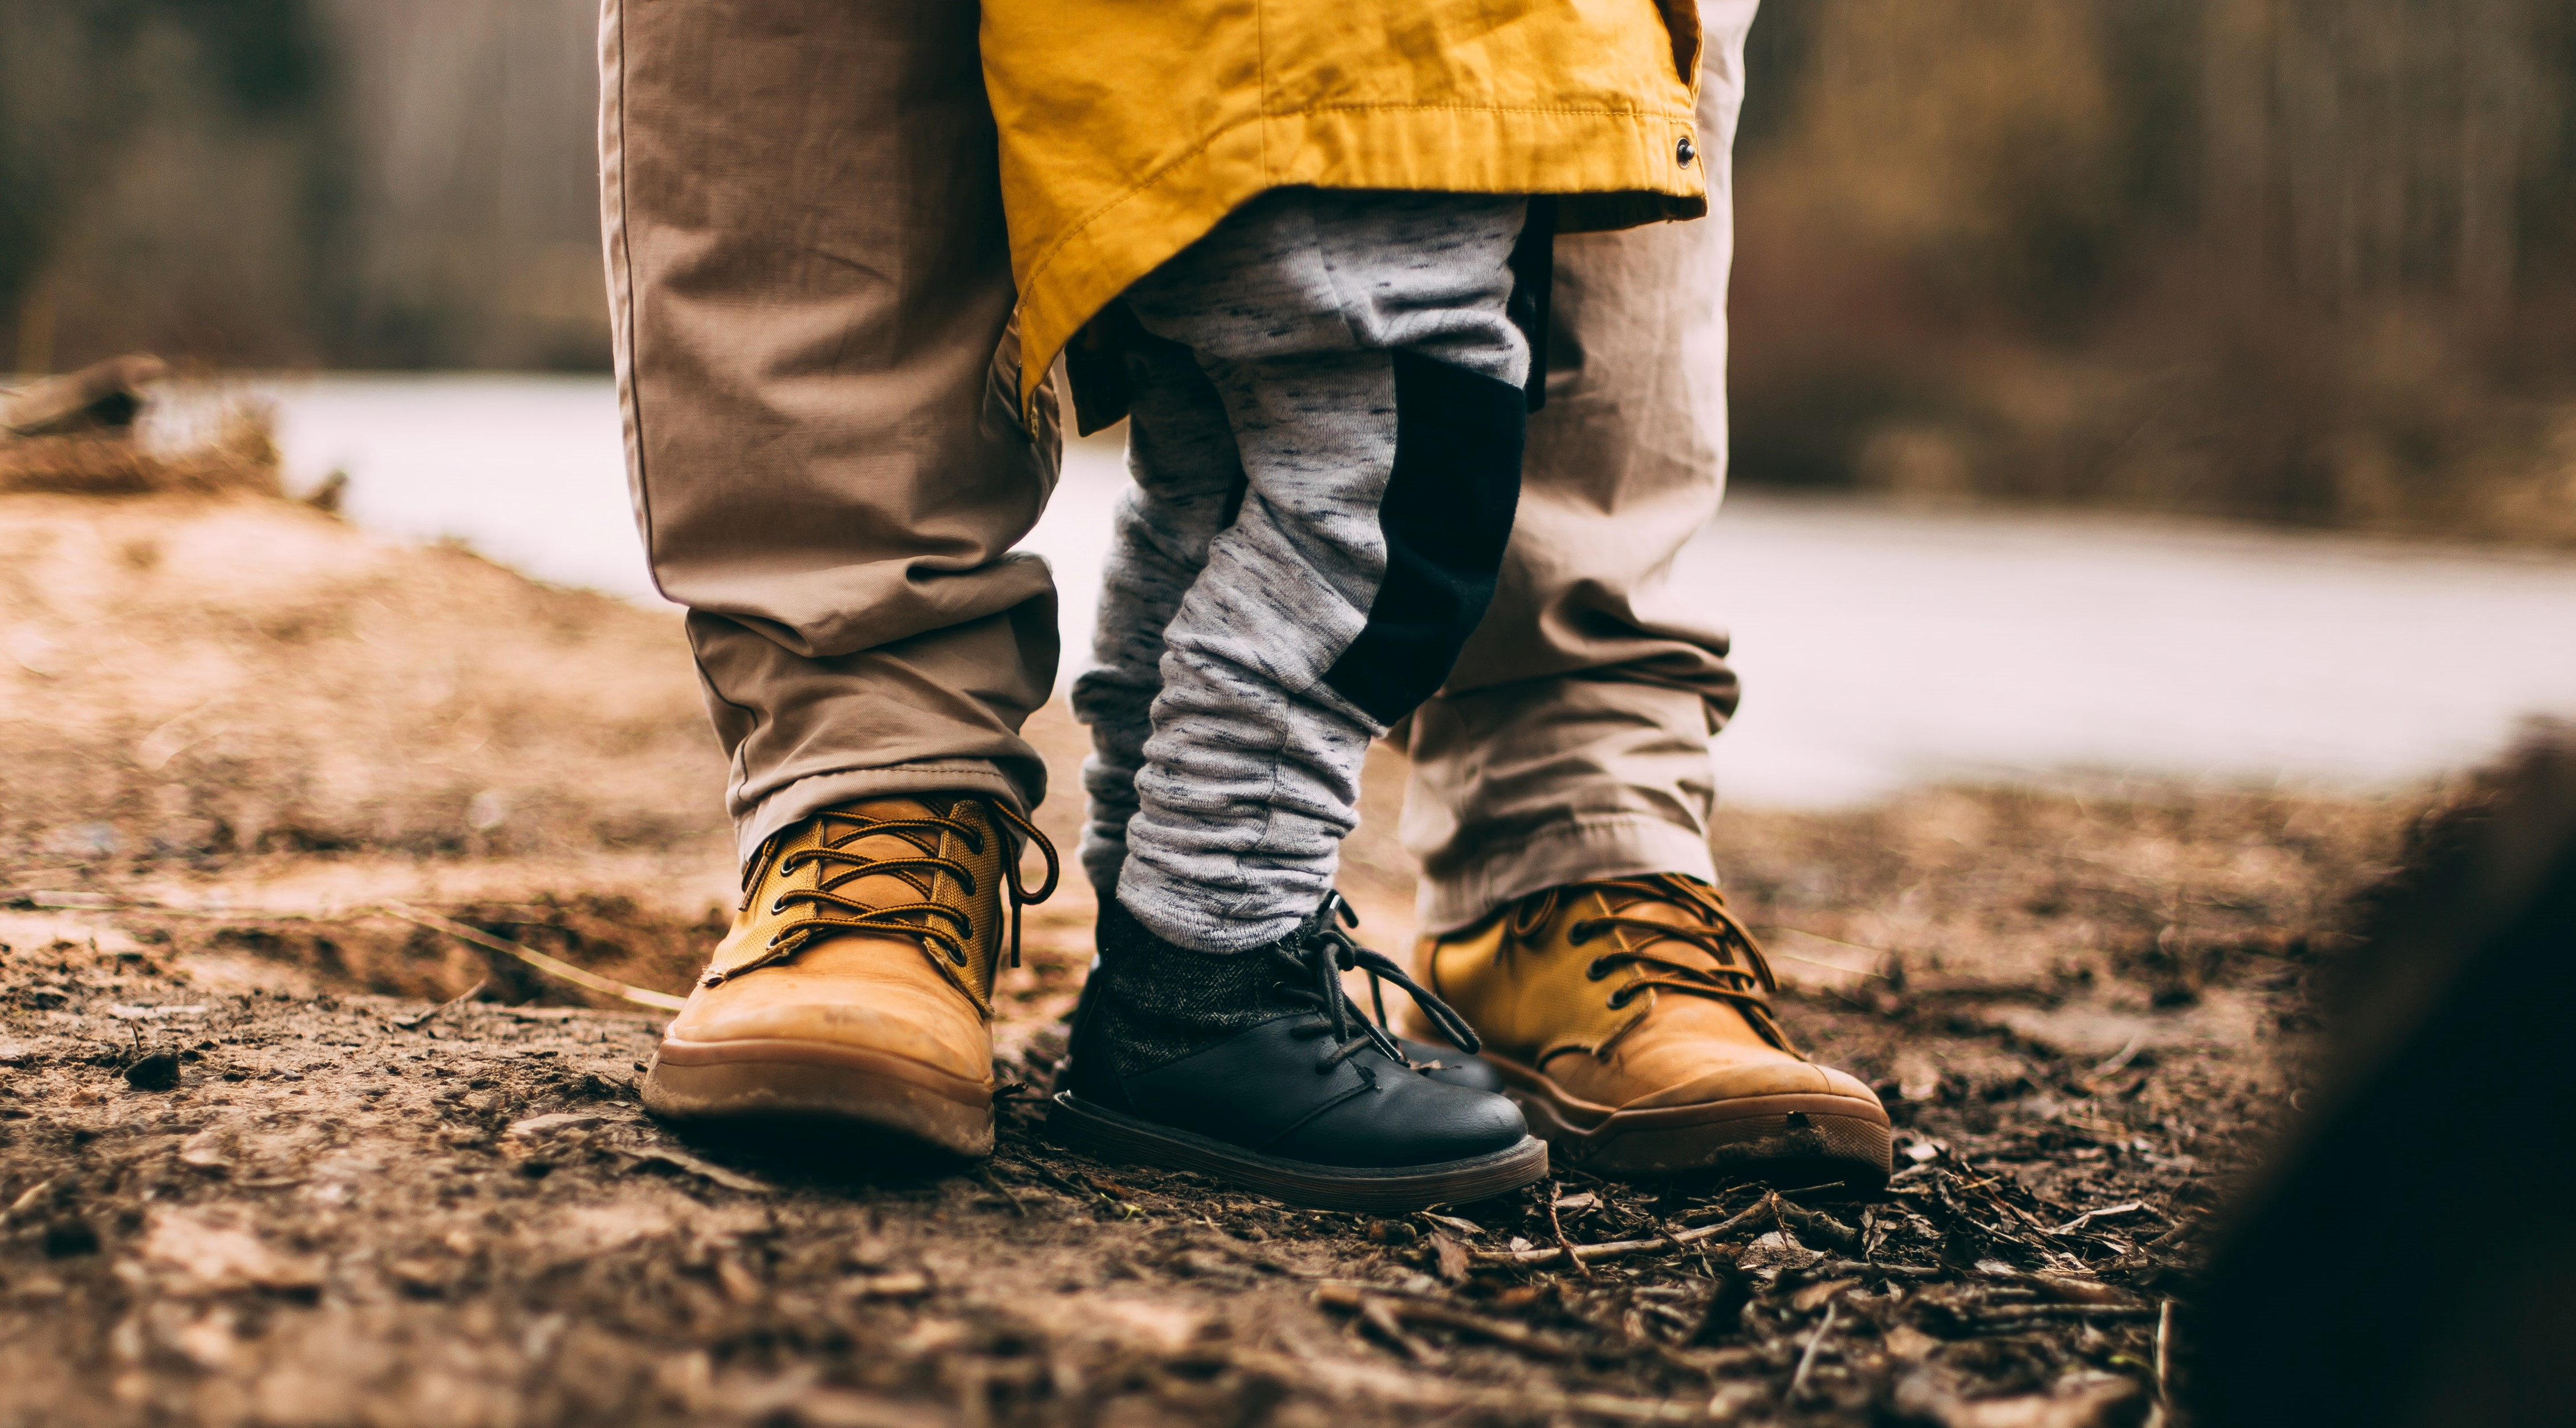 A father and son stand in their work boots.